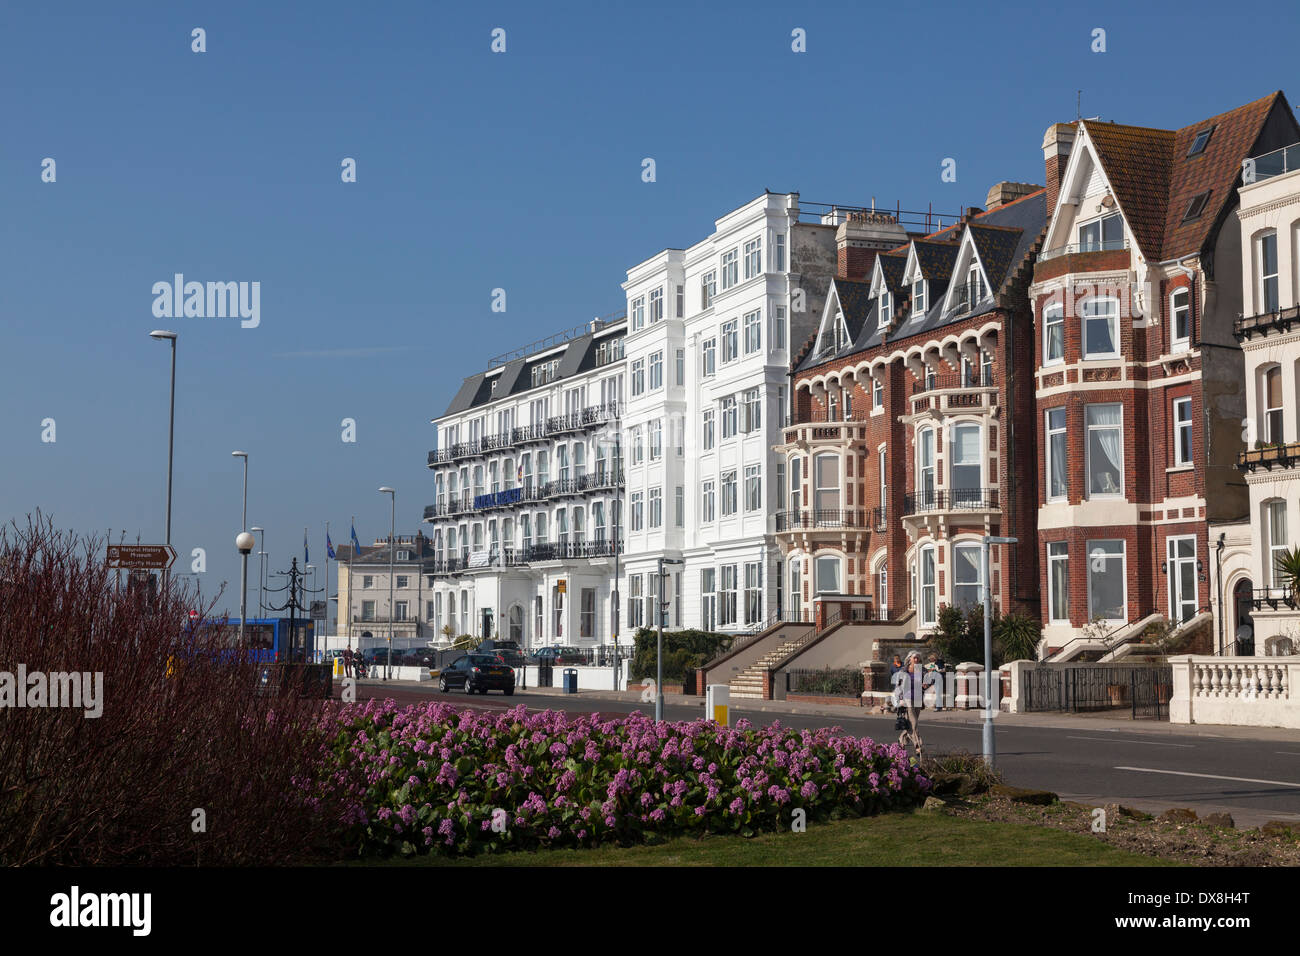 Hotels on the seafront promenade at Southsea. - Stock Image